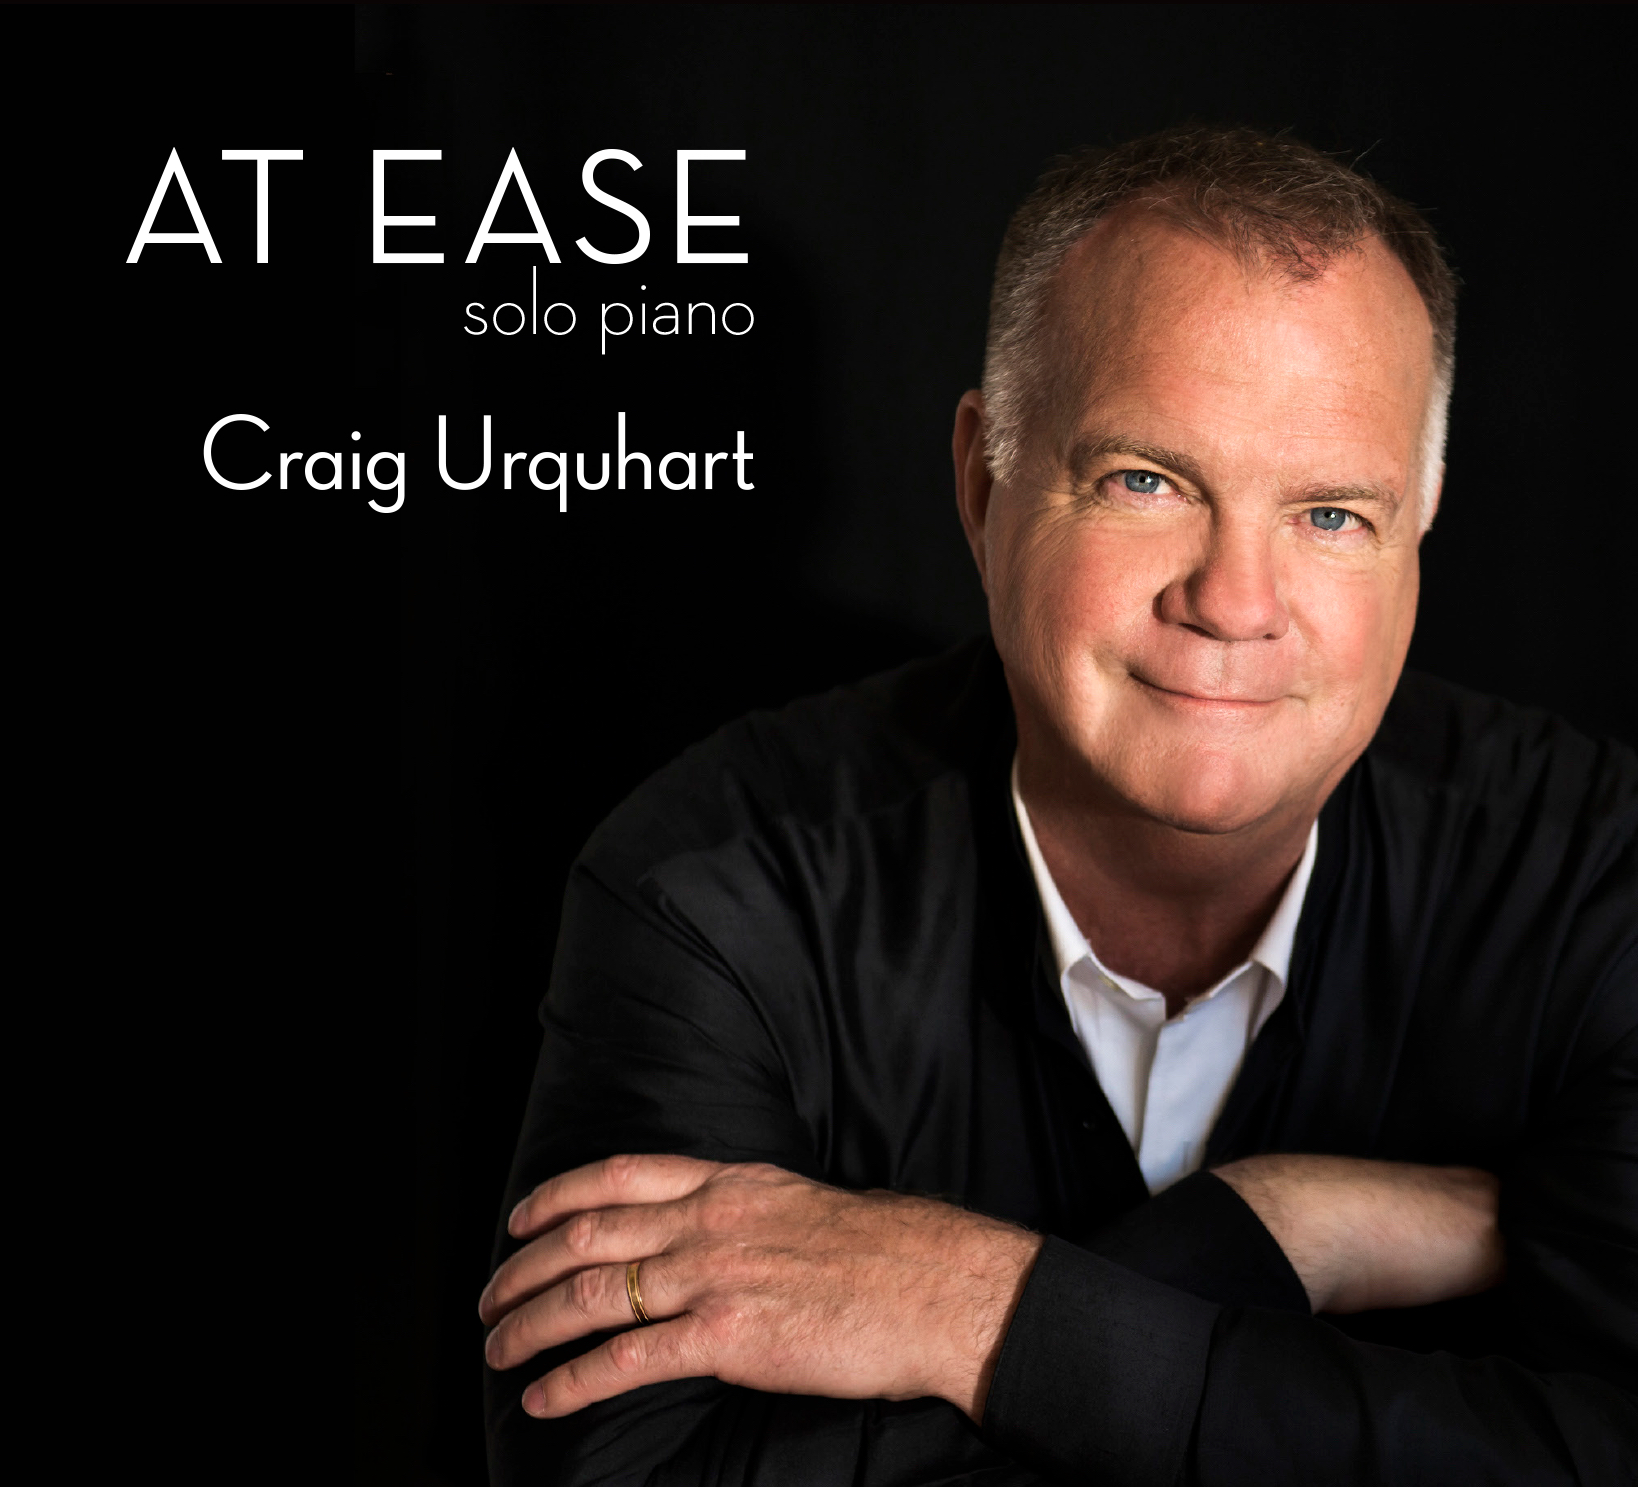 At Ease New Solo Piano Music By Craig Urquhart